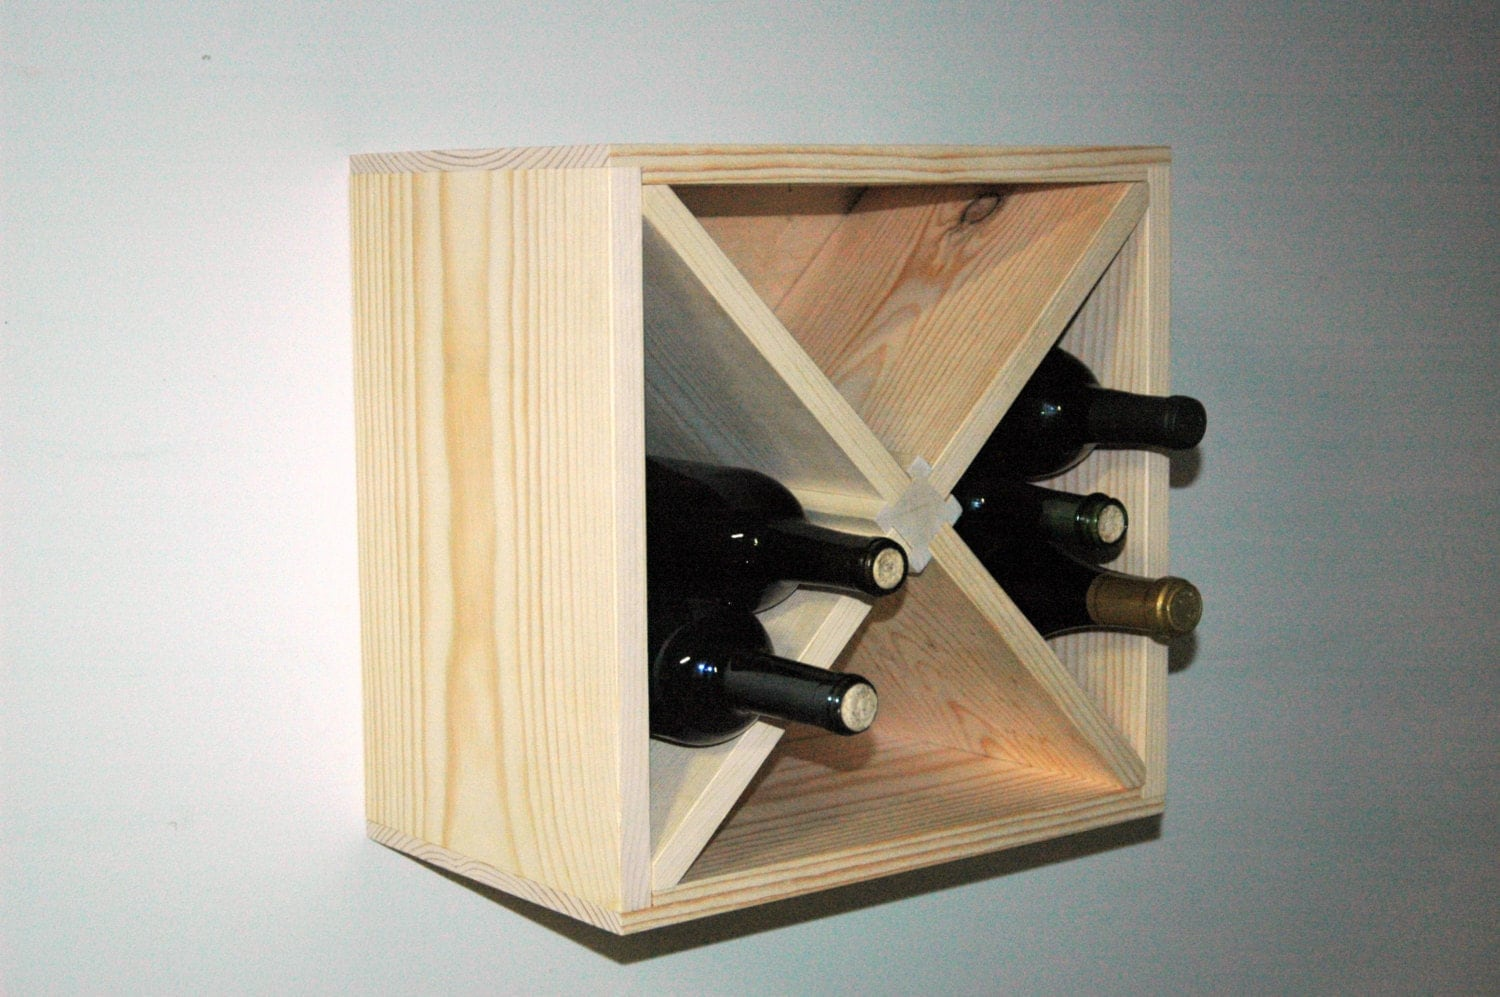 15 Square Wall Mount Hanging Wood Wine Rack Kitchen